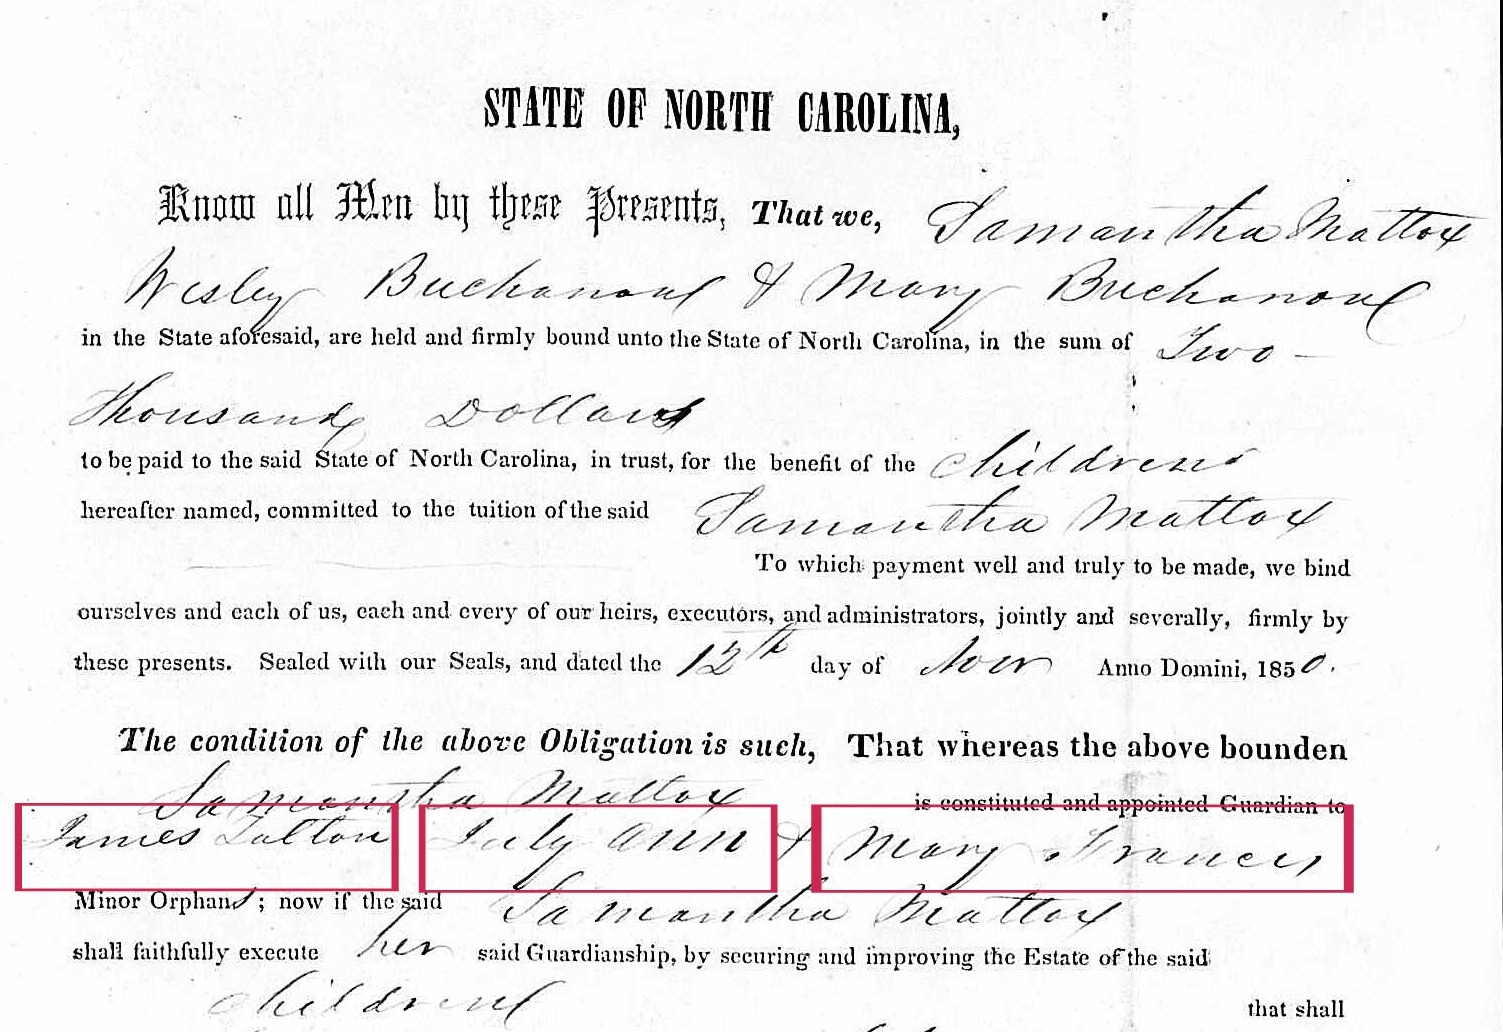 Need help understanding your ancestor's estate record? Find tips and strategies to get the most out of your genealogy research.